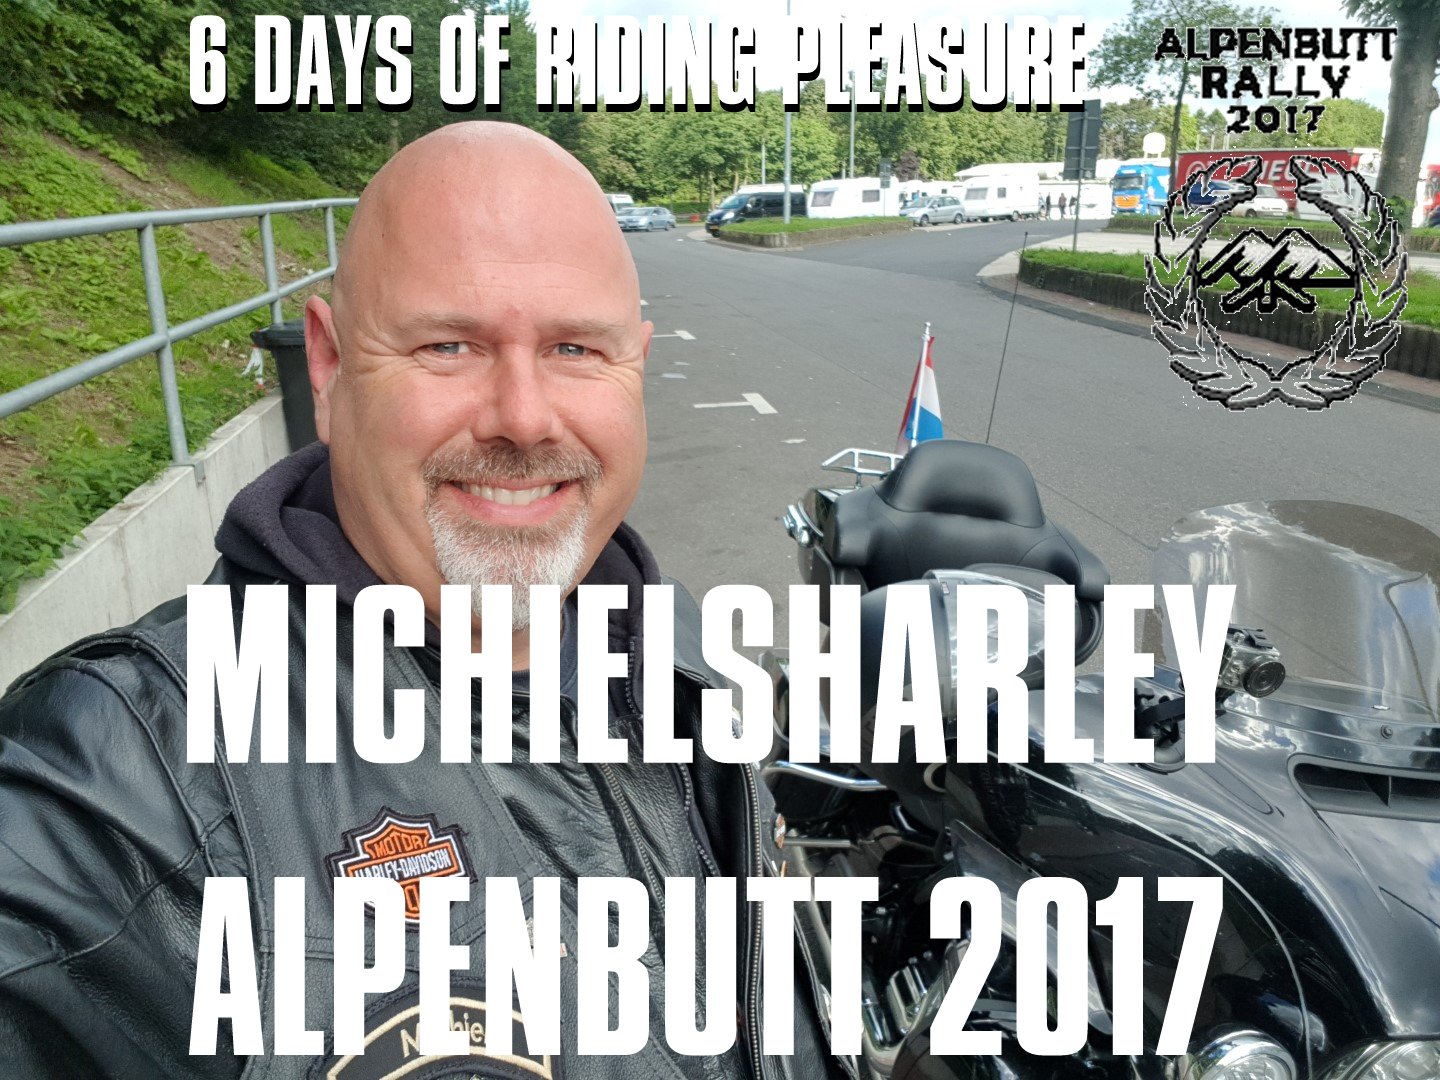 Alpen Butt Rally 2017